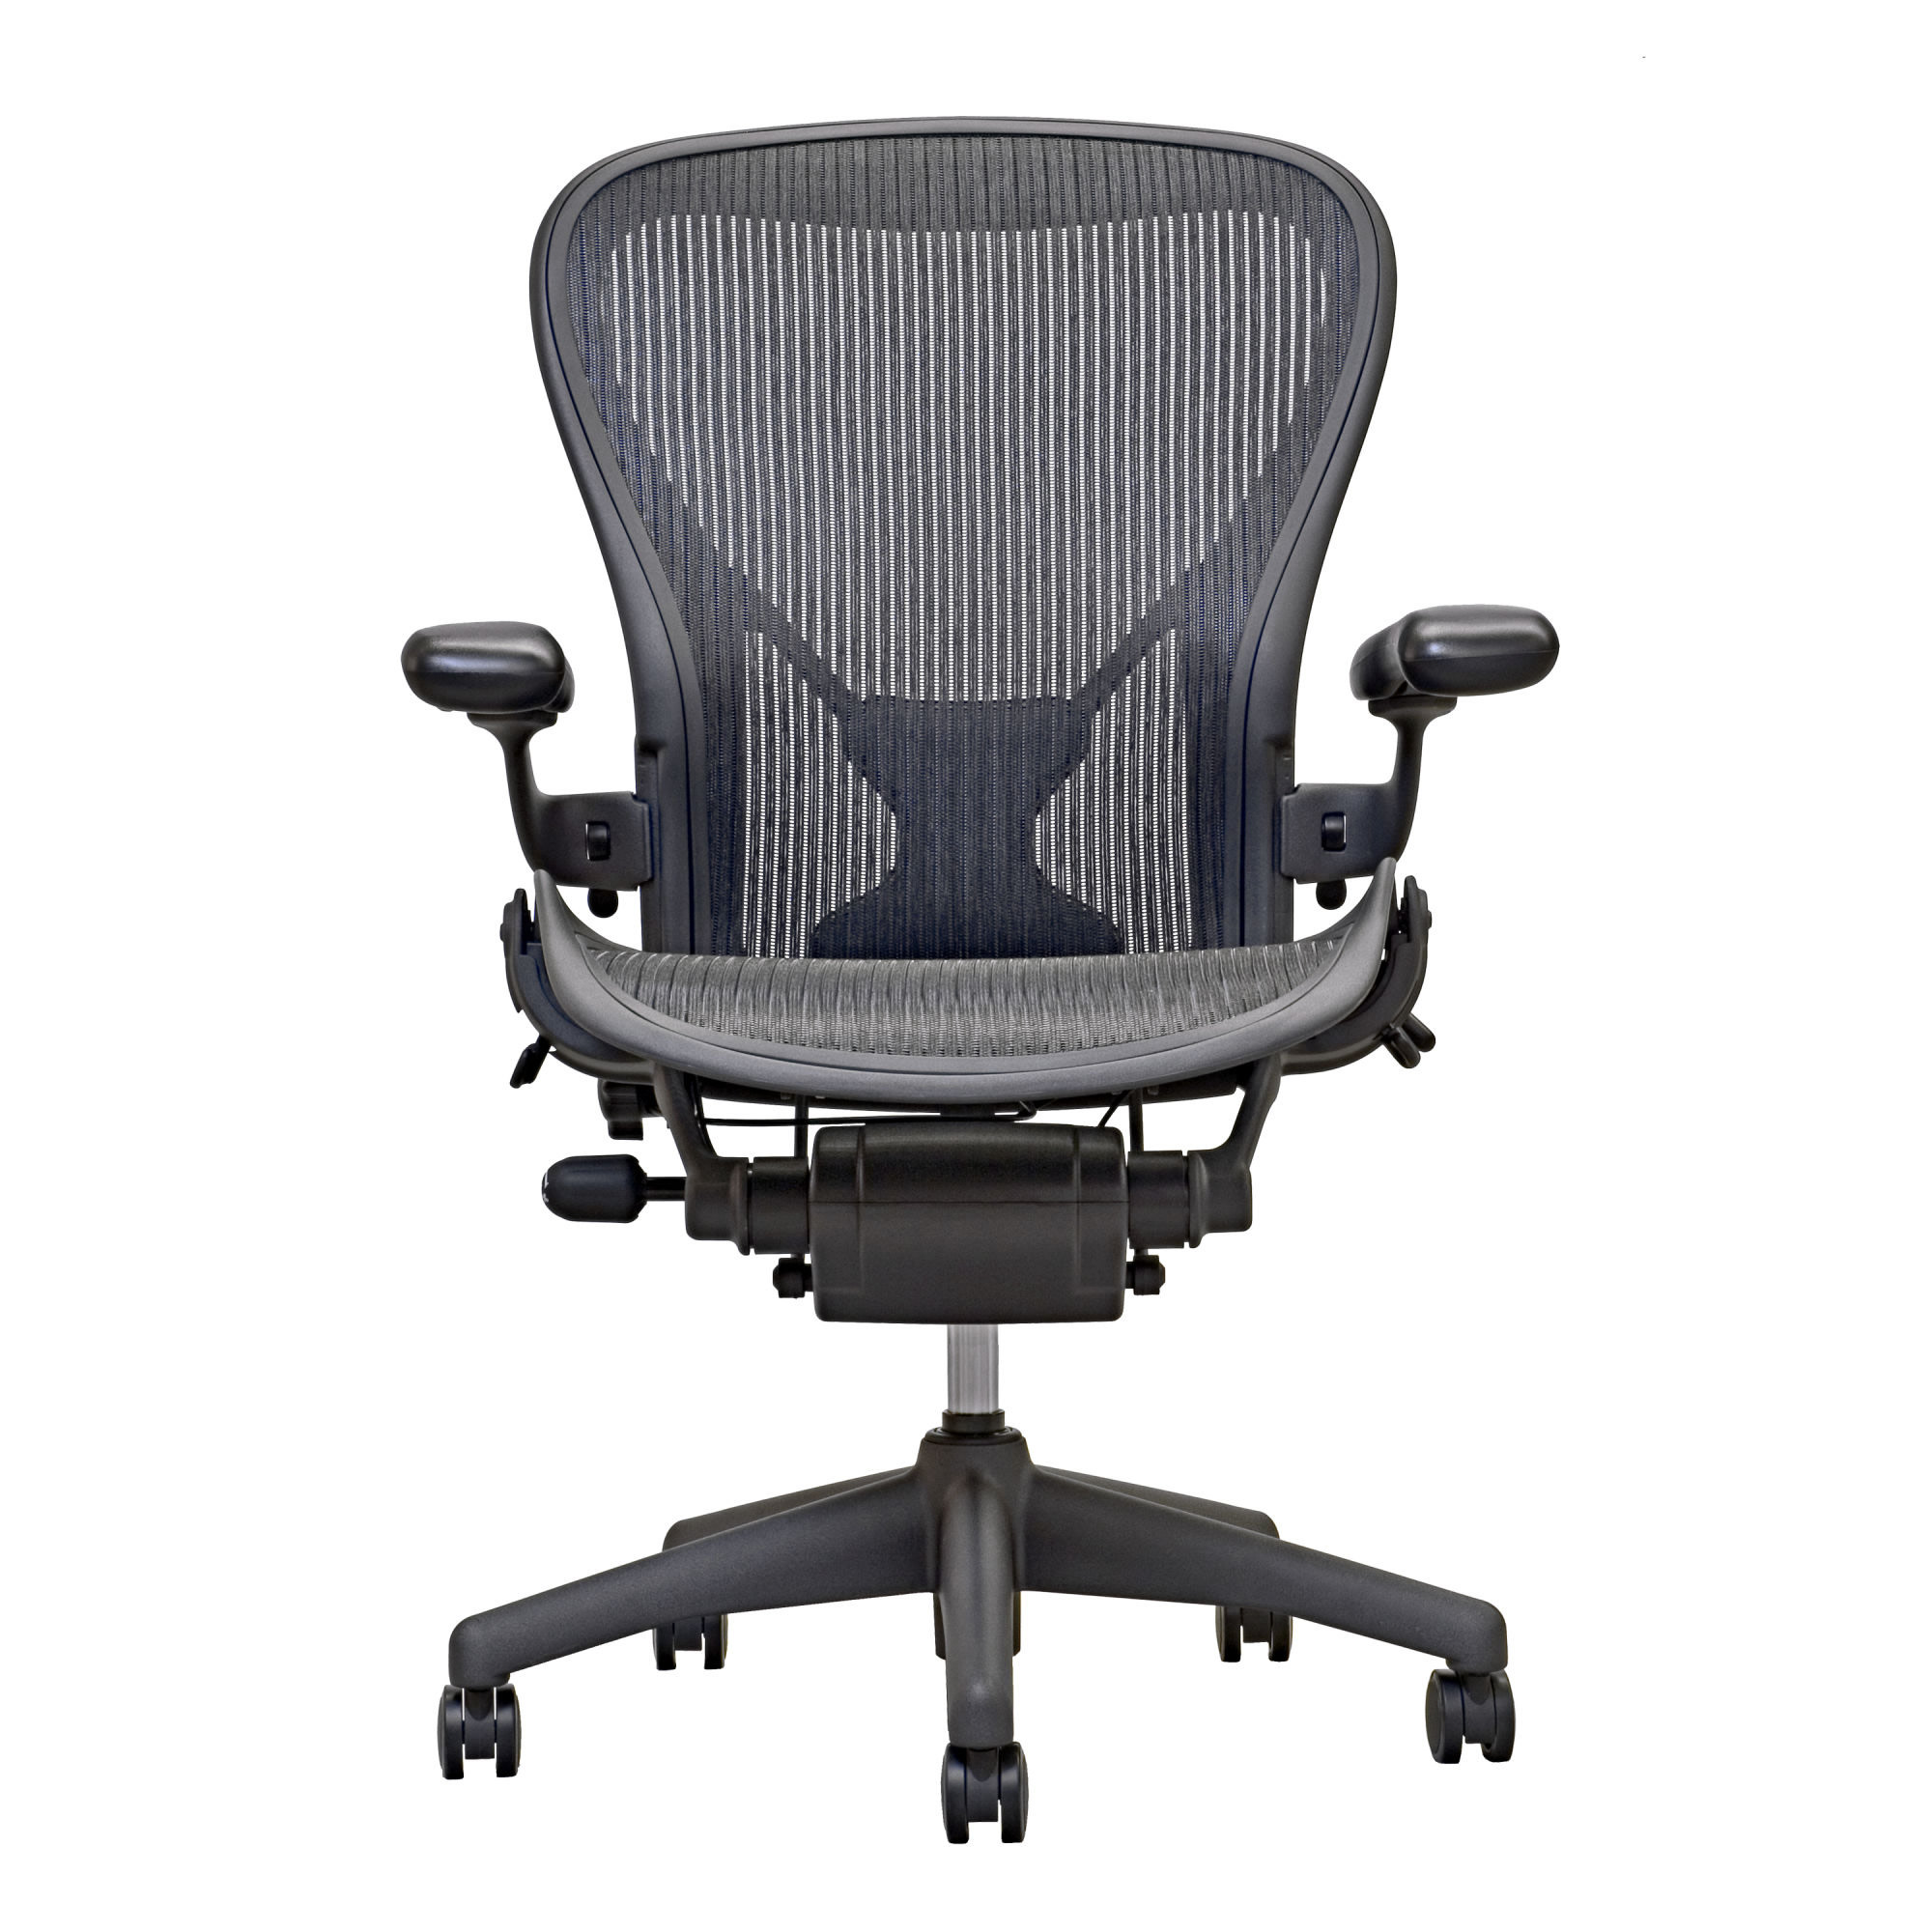 Aeron Chair by Herman Miller - Posture Fit - Carbon  sc 1 st  Madison Seating : fit chair - lorbestier.org